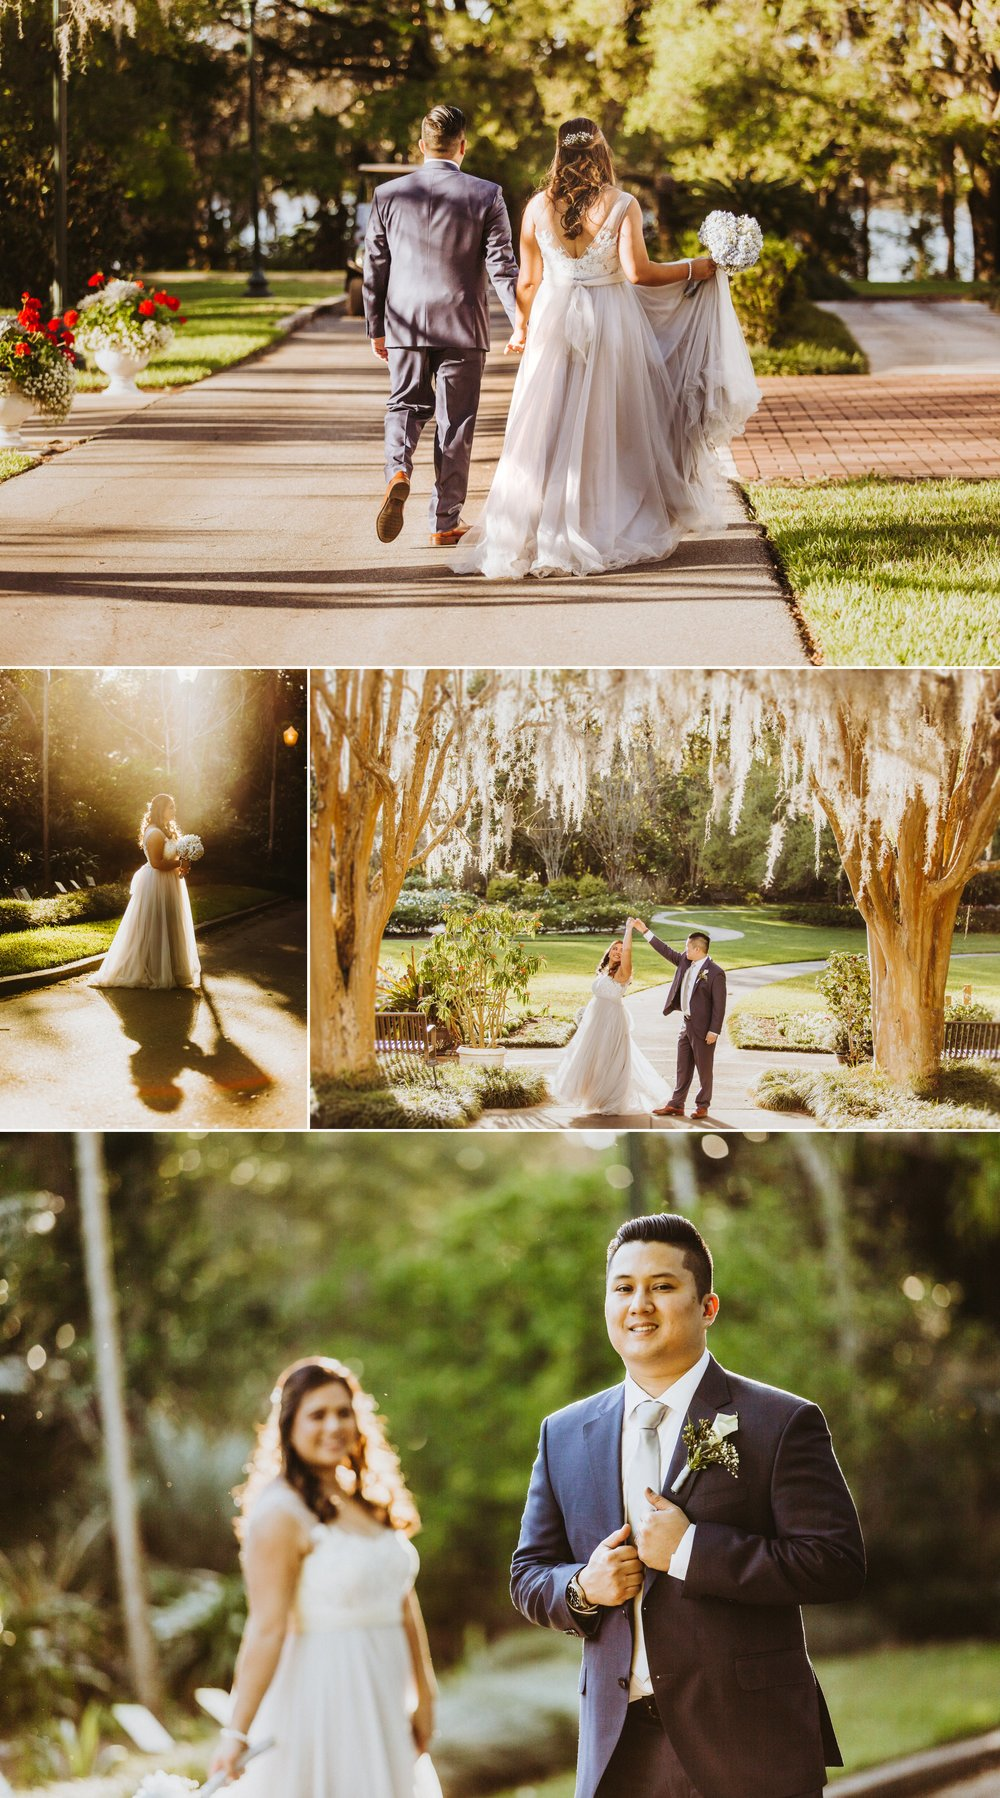 Romantic Leu Gardens Wedding Pictures - Winter Park Wedding Photographer Shaina DeCiryan- Effie+Phillip9.jpg